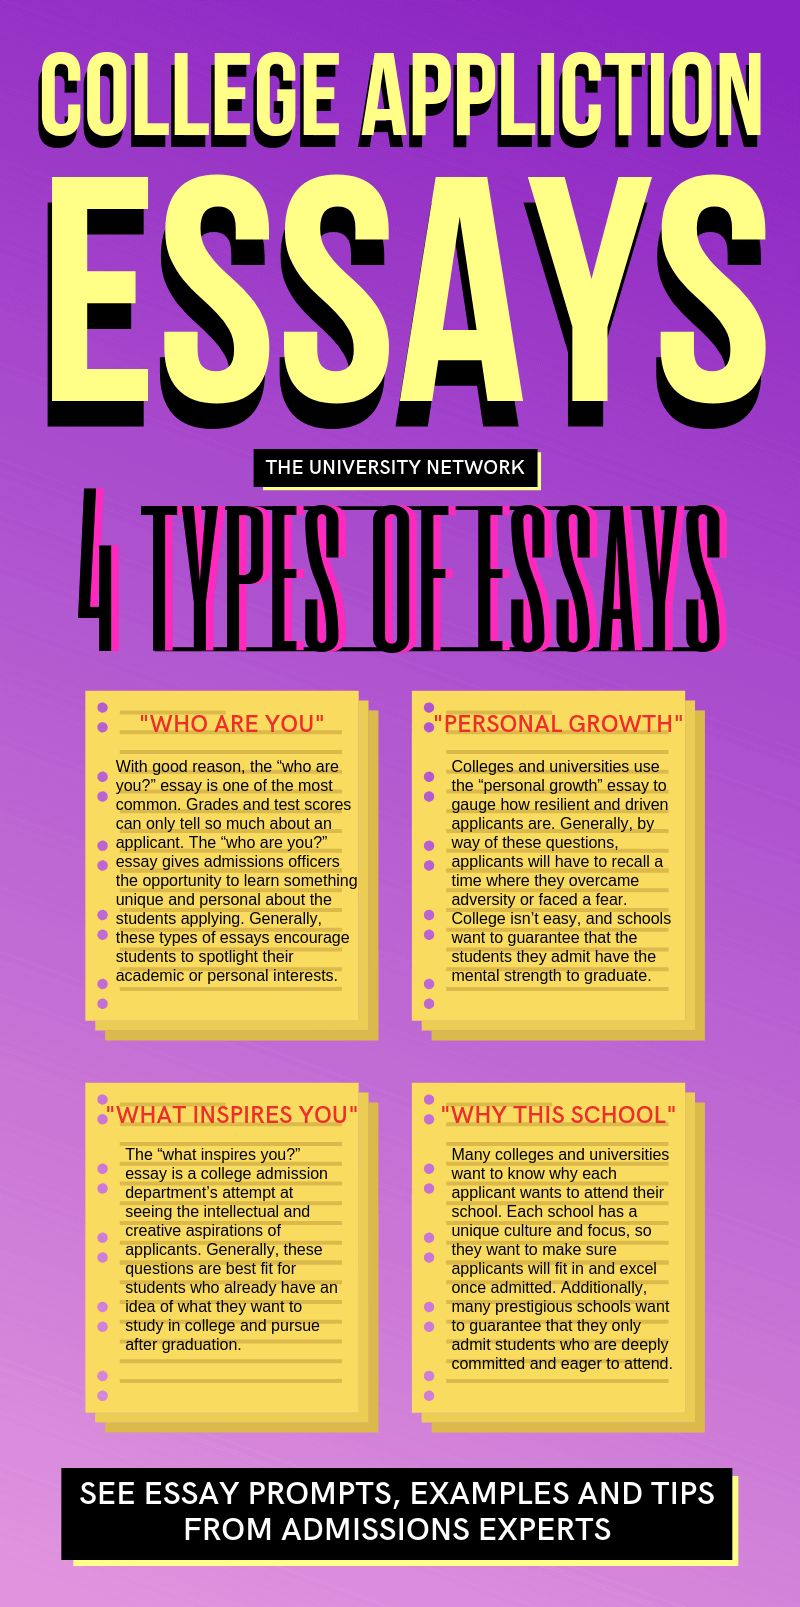 What Are Colleges Looking For In An Essay